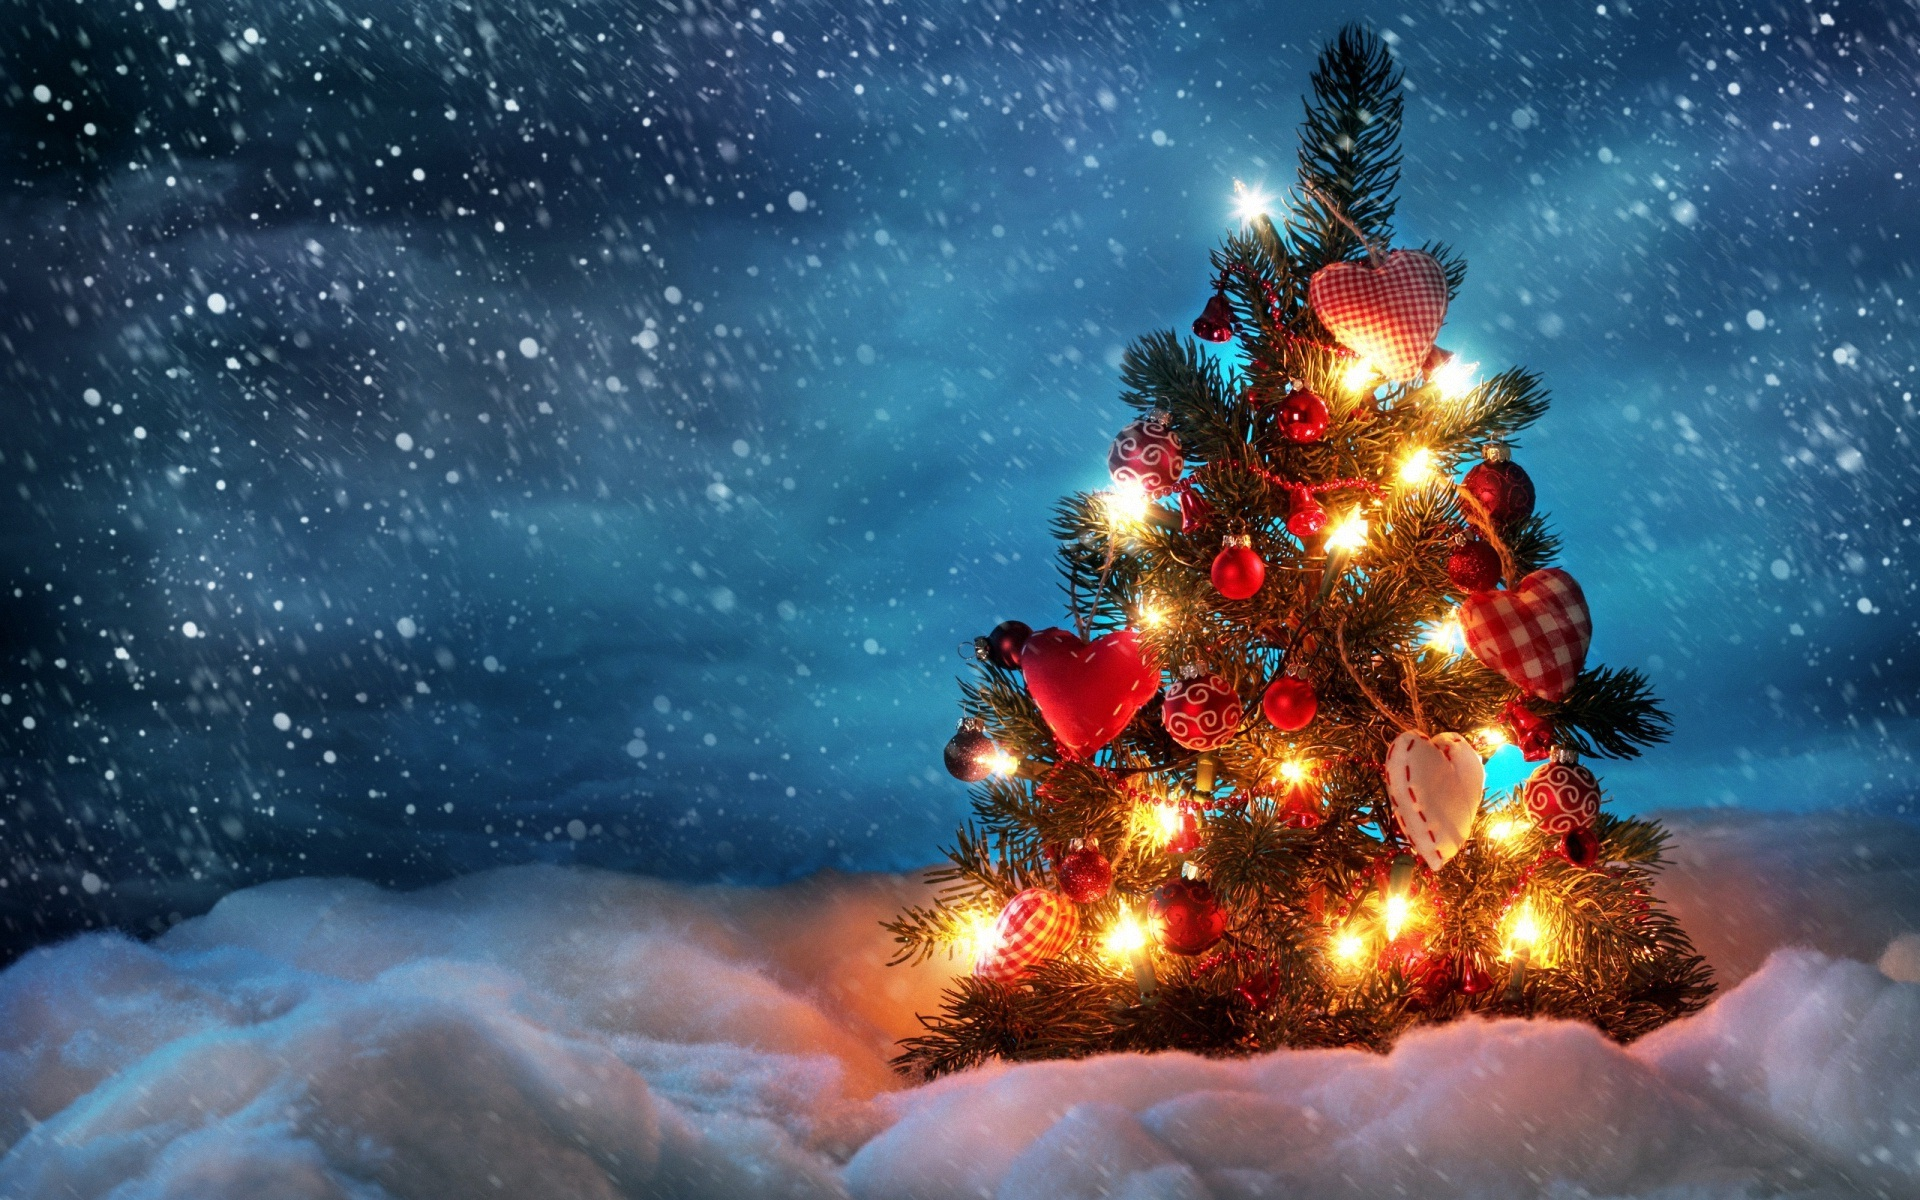 2014 Beautiful Christmas Tree   Wallpaper High Definition High 1920x1200